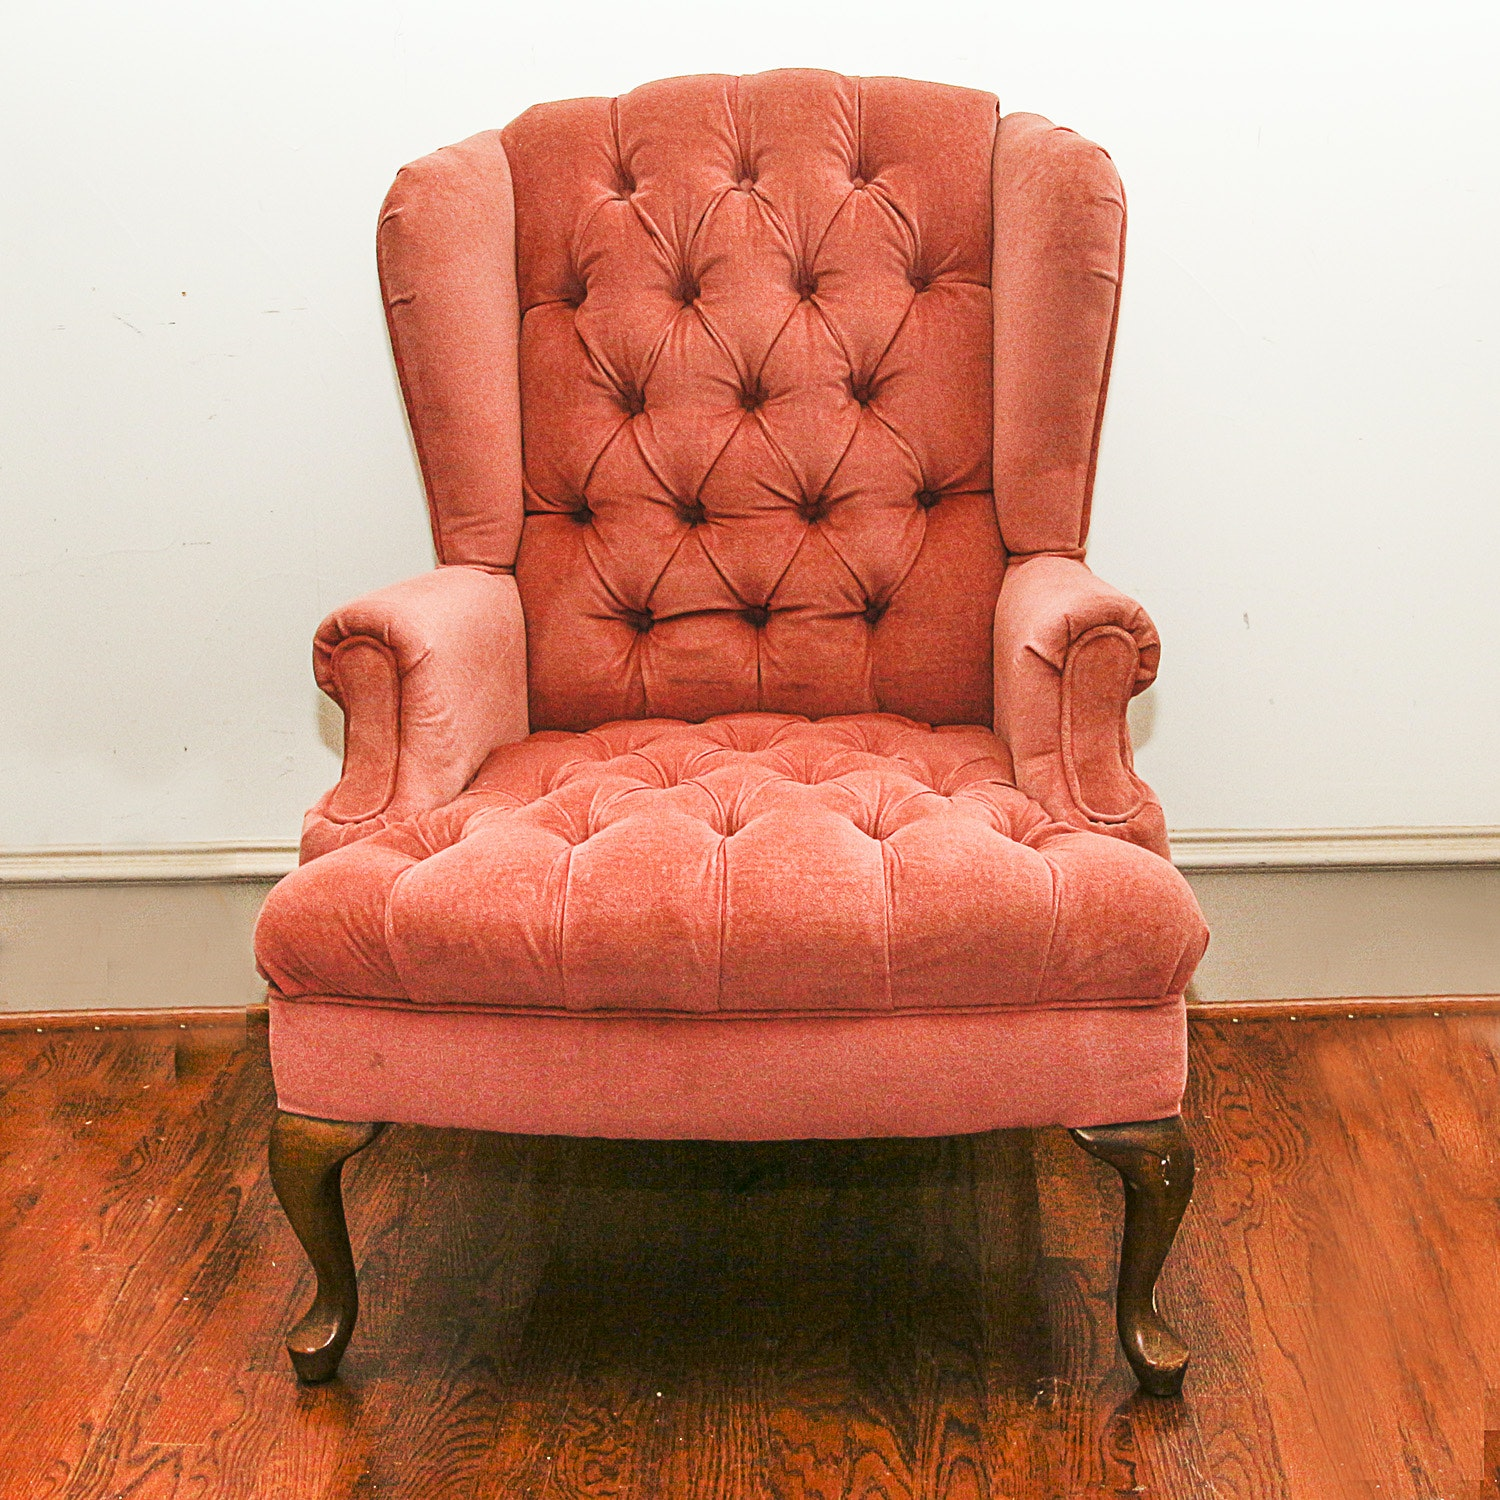 Vintage Queen Anne Style Button-Tufted Wing Chair